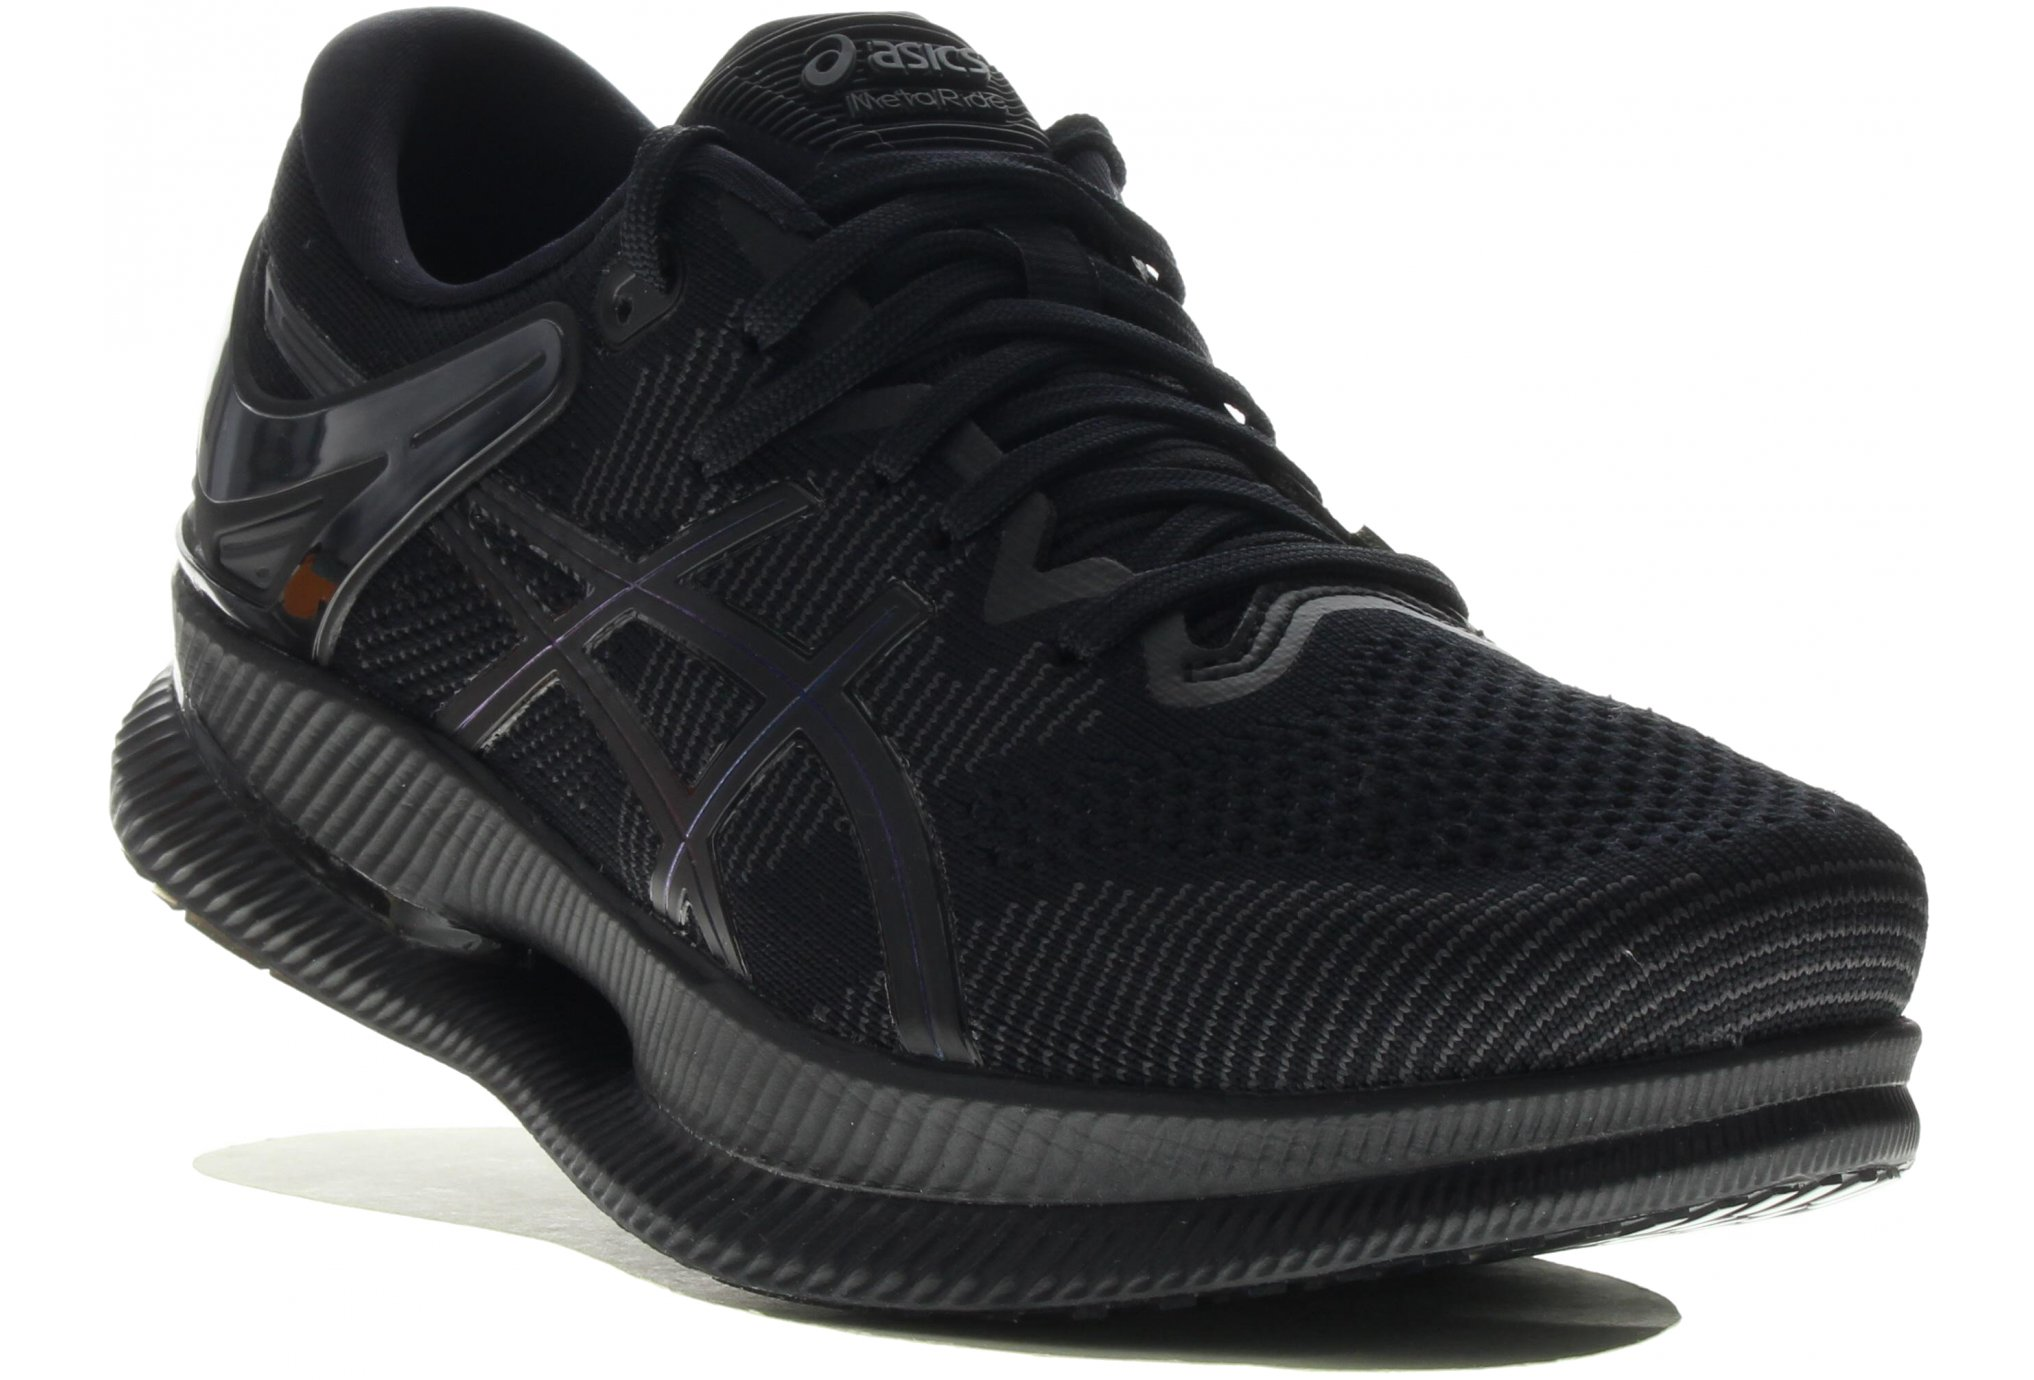 Asics MetaRide Chaussures homme